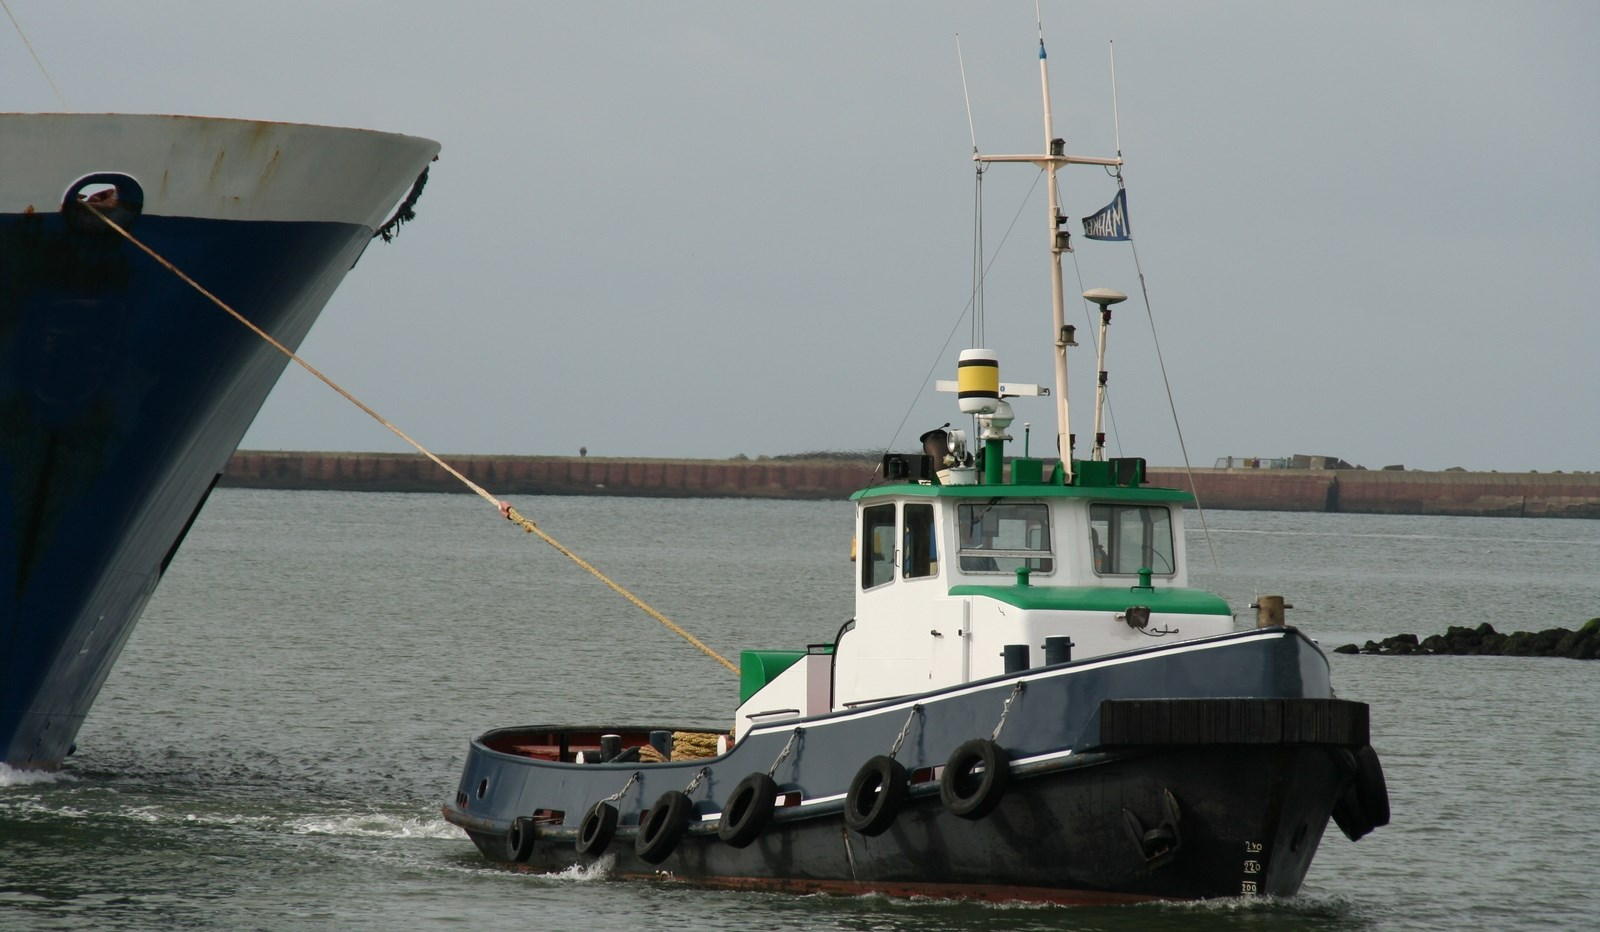 Used Tugboat for Sale for harbour and coastal services